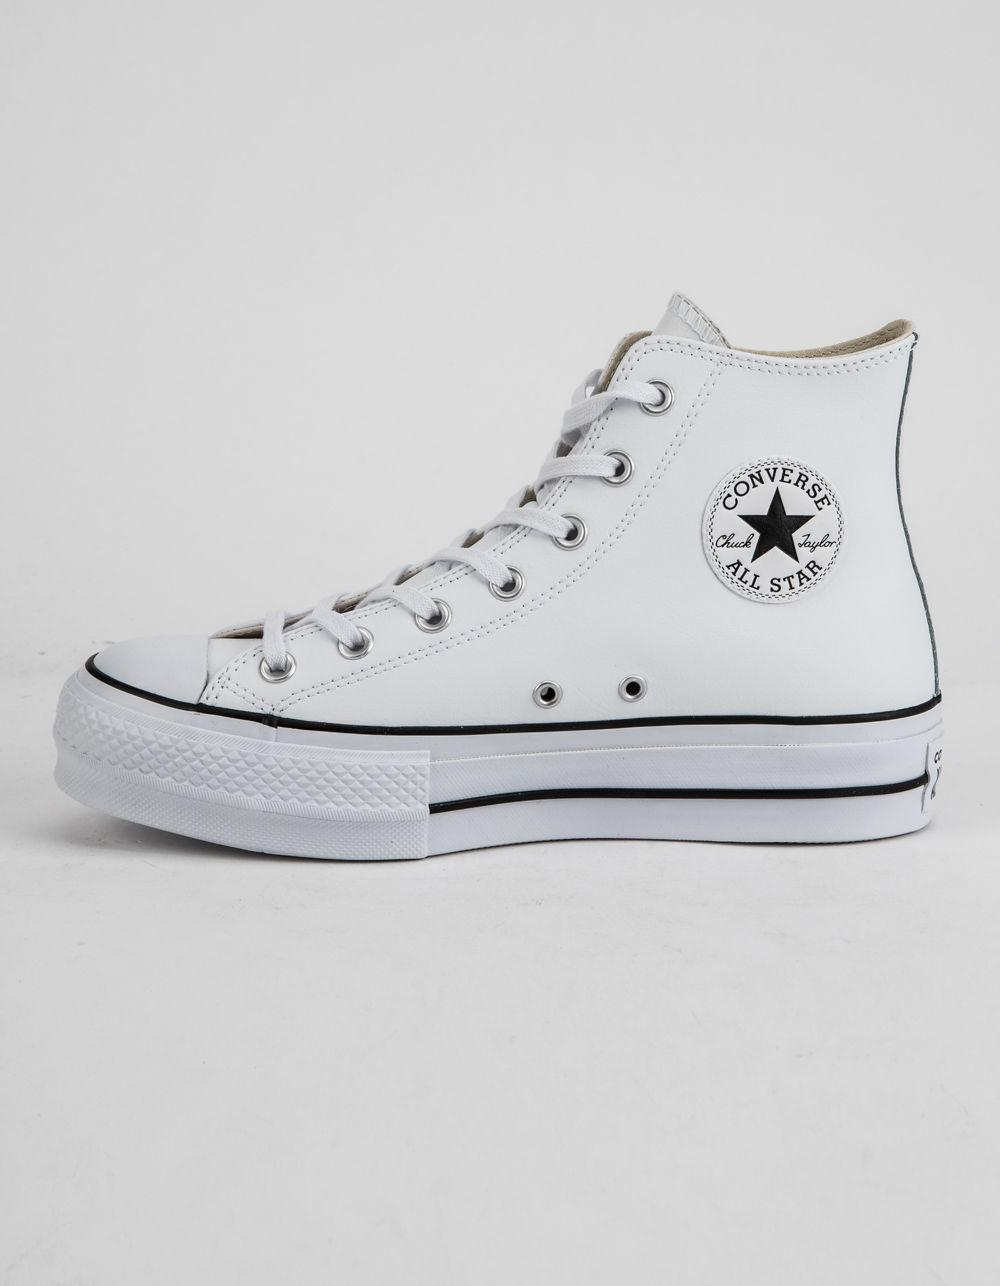 2dc26afa1 Converse Chuck Taylor All Star Lift Faux Leather White Womens High ...